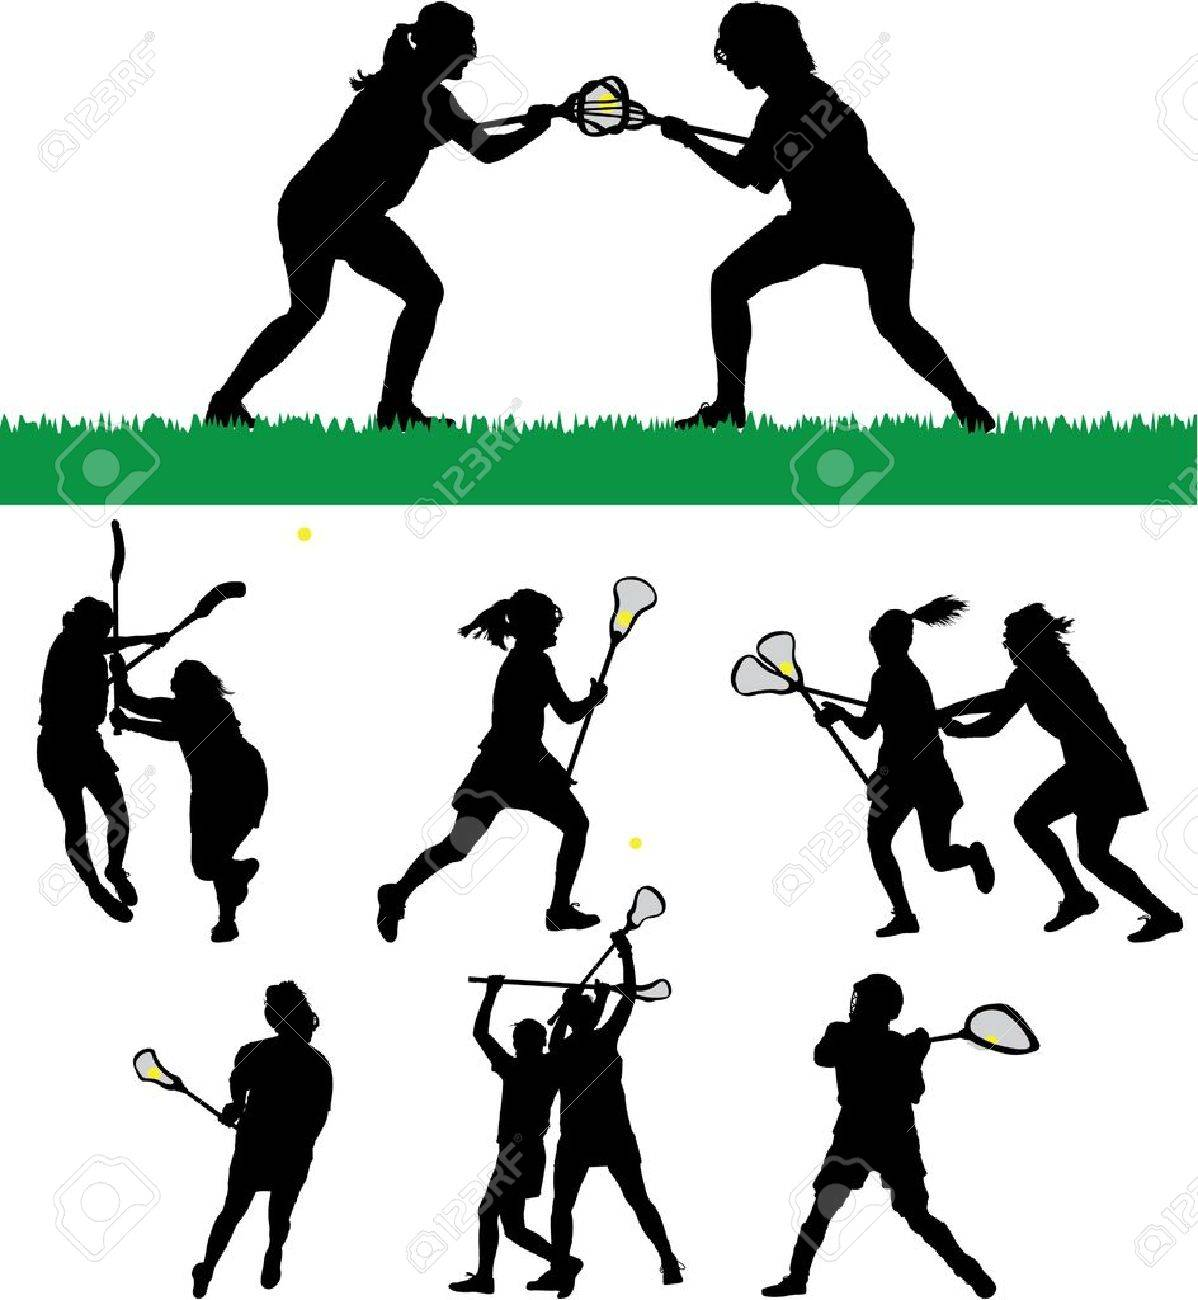 800 Lacrosse Cliparts, Stock Vector And Royalty Free Lacrosse ...